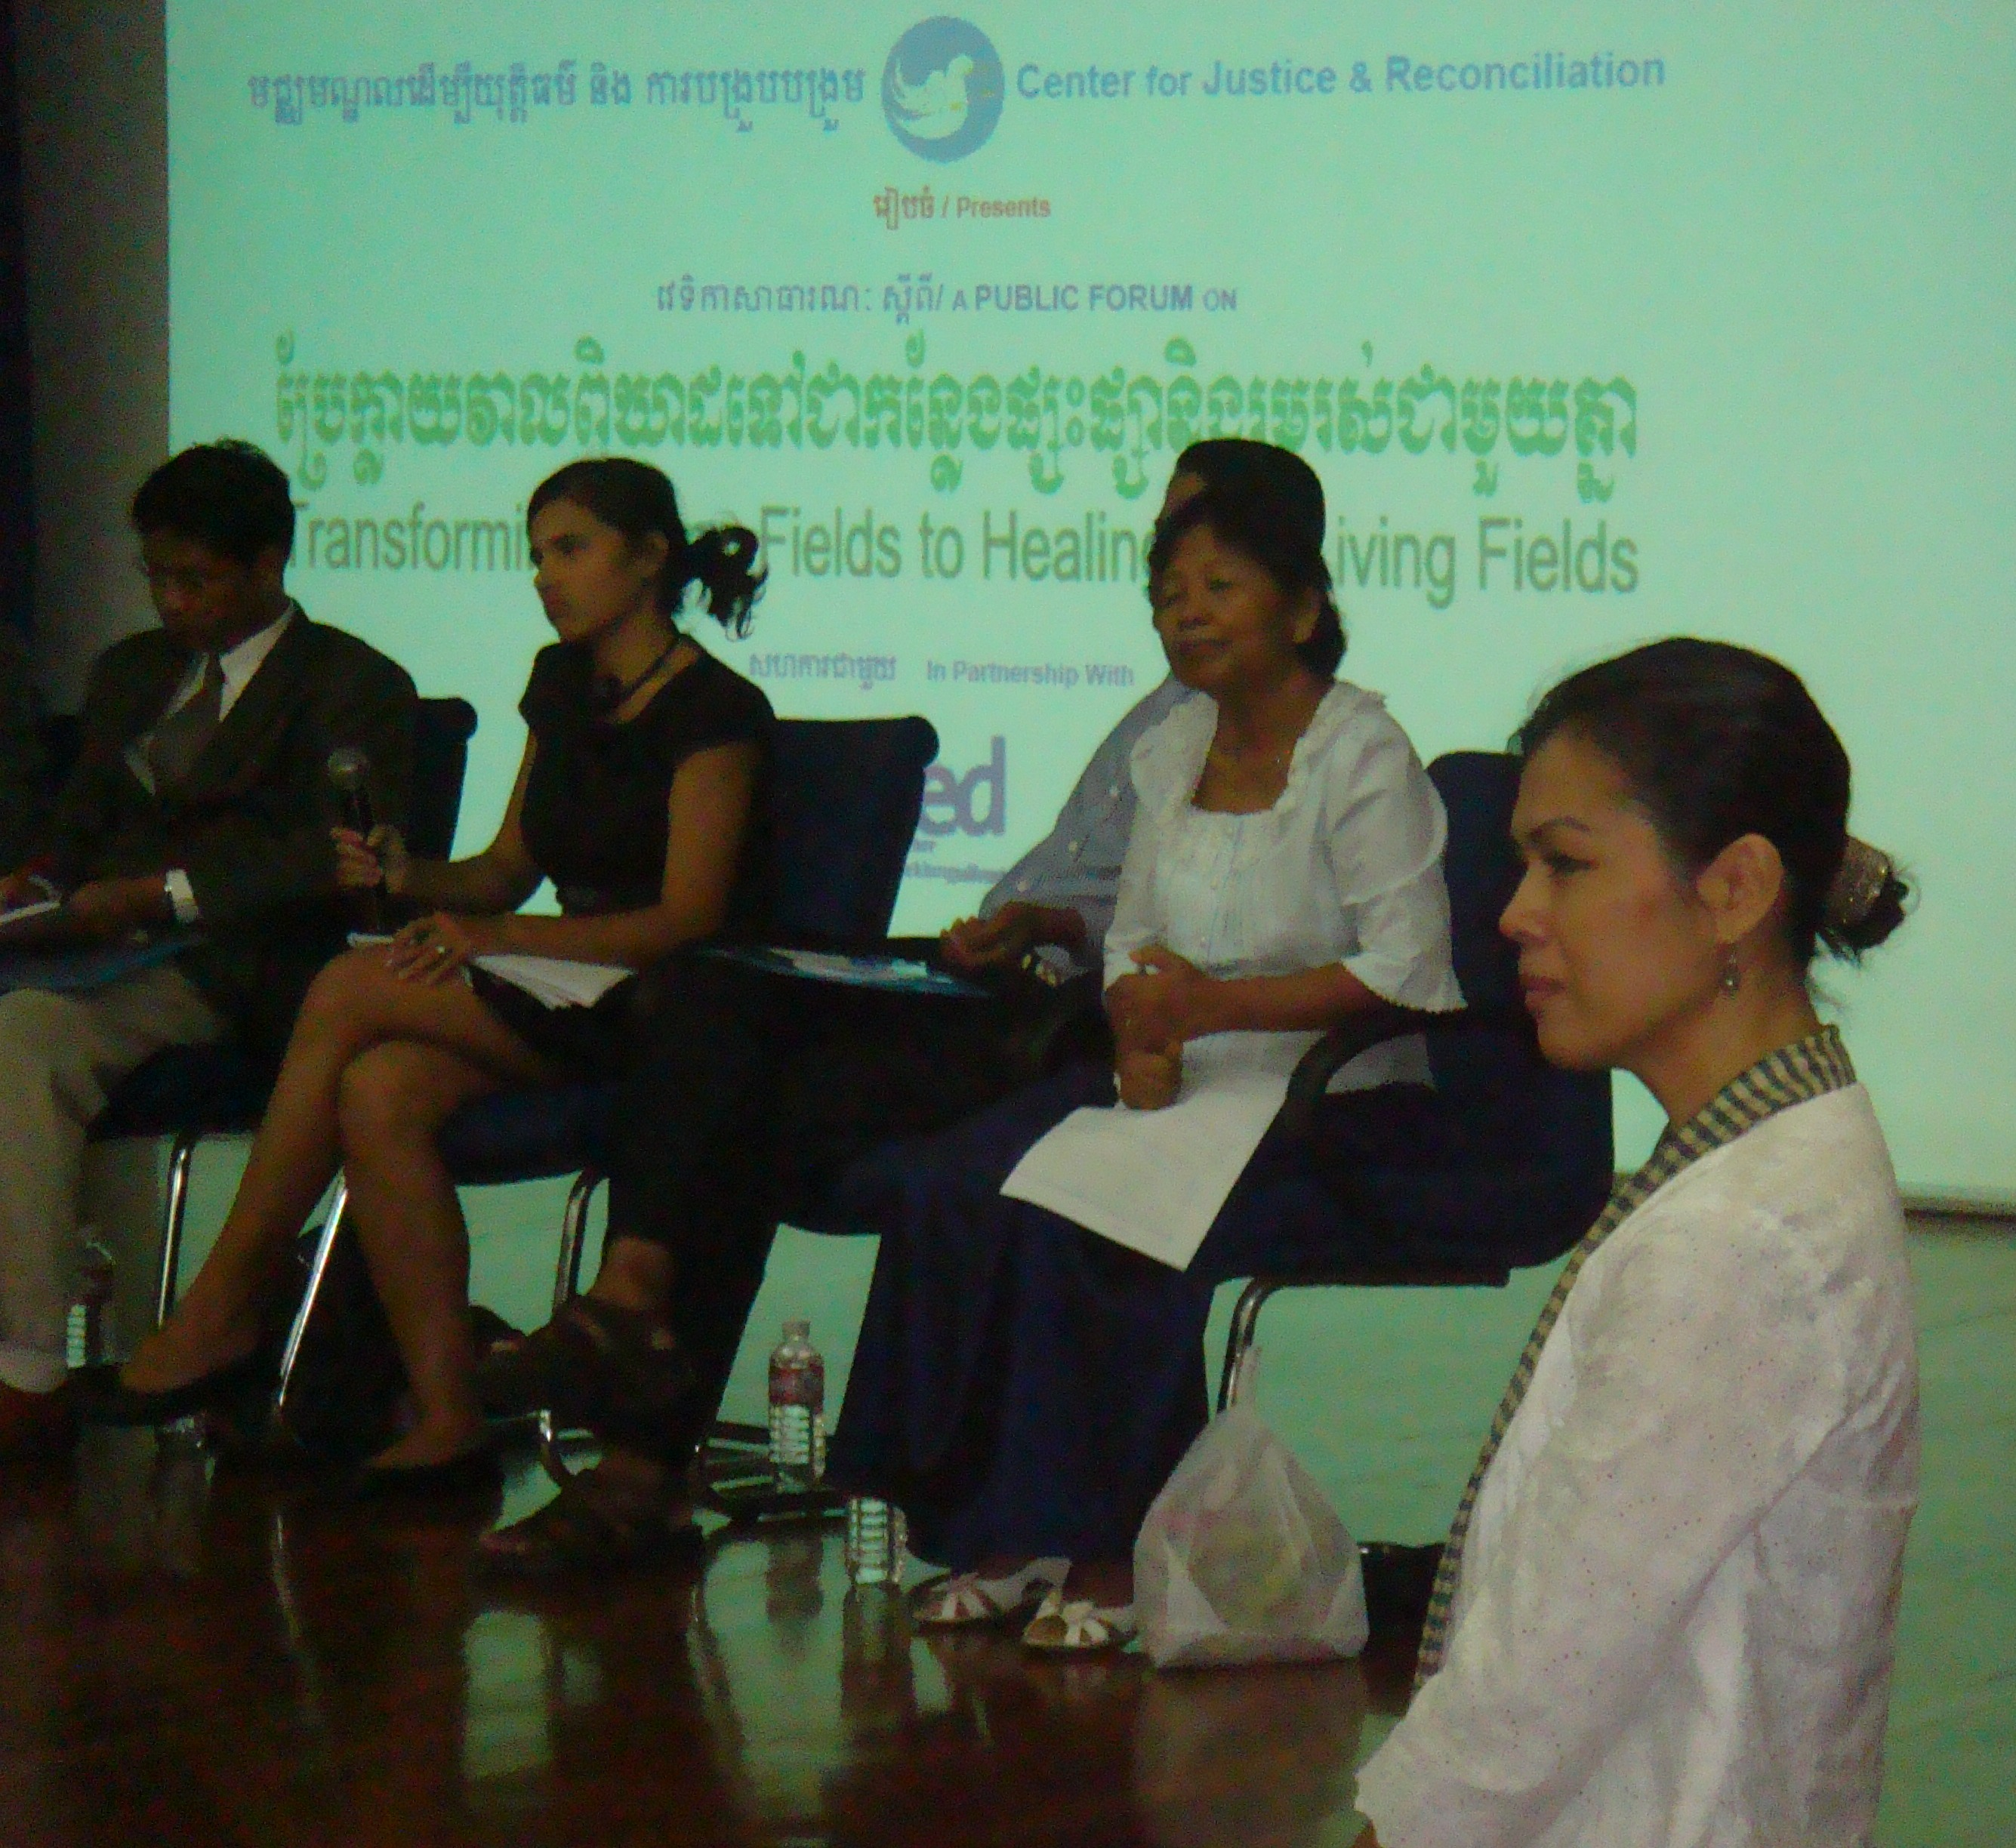 Theary Seng moderating the Transforming Killing Fields to Healing, Living Fields - Advent of Duch Verdict, 23 July 2010